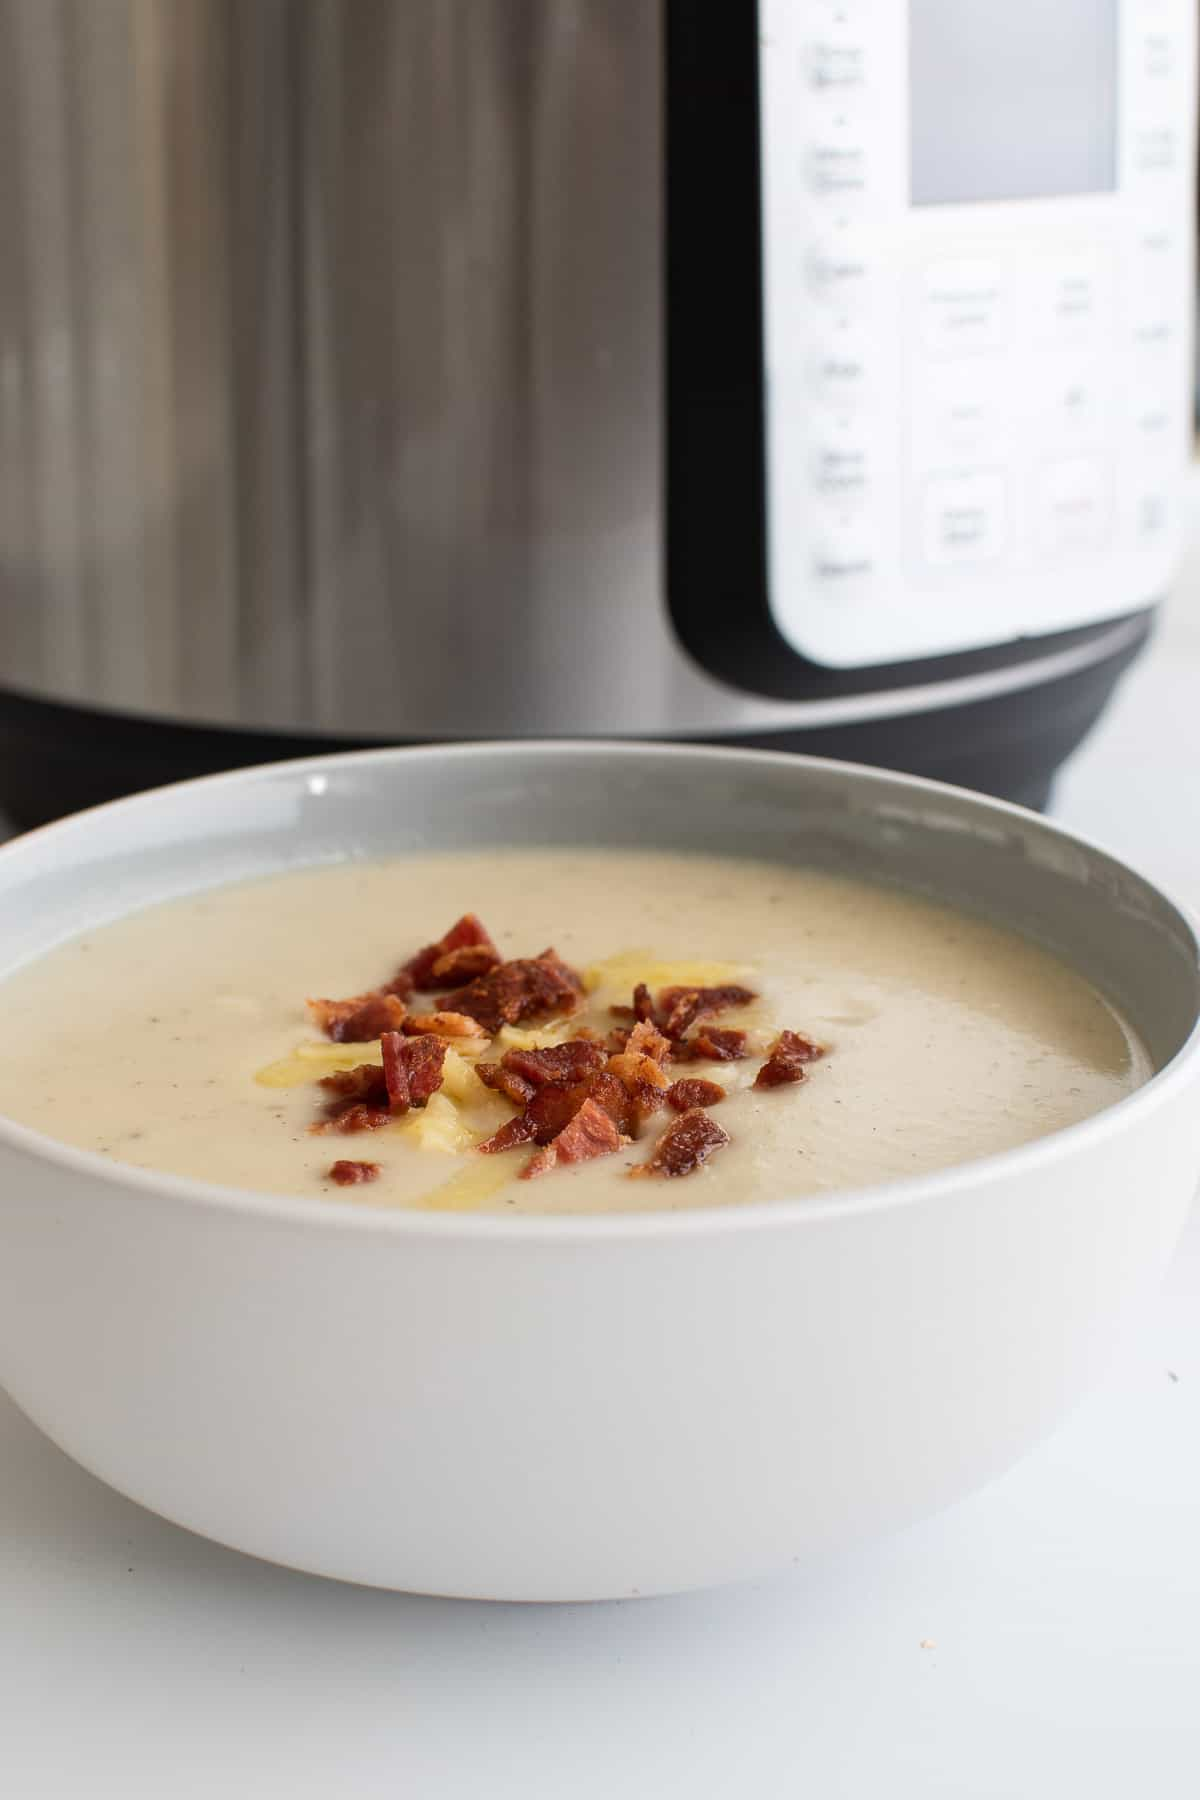 A bowl of cauliflower soup in front of an Instant Pot.